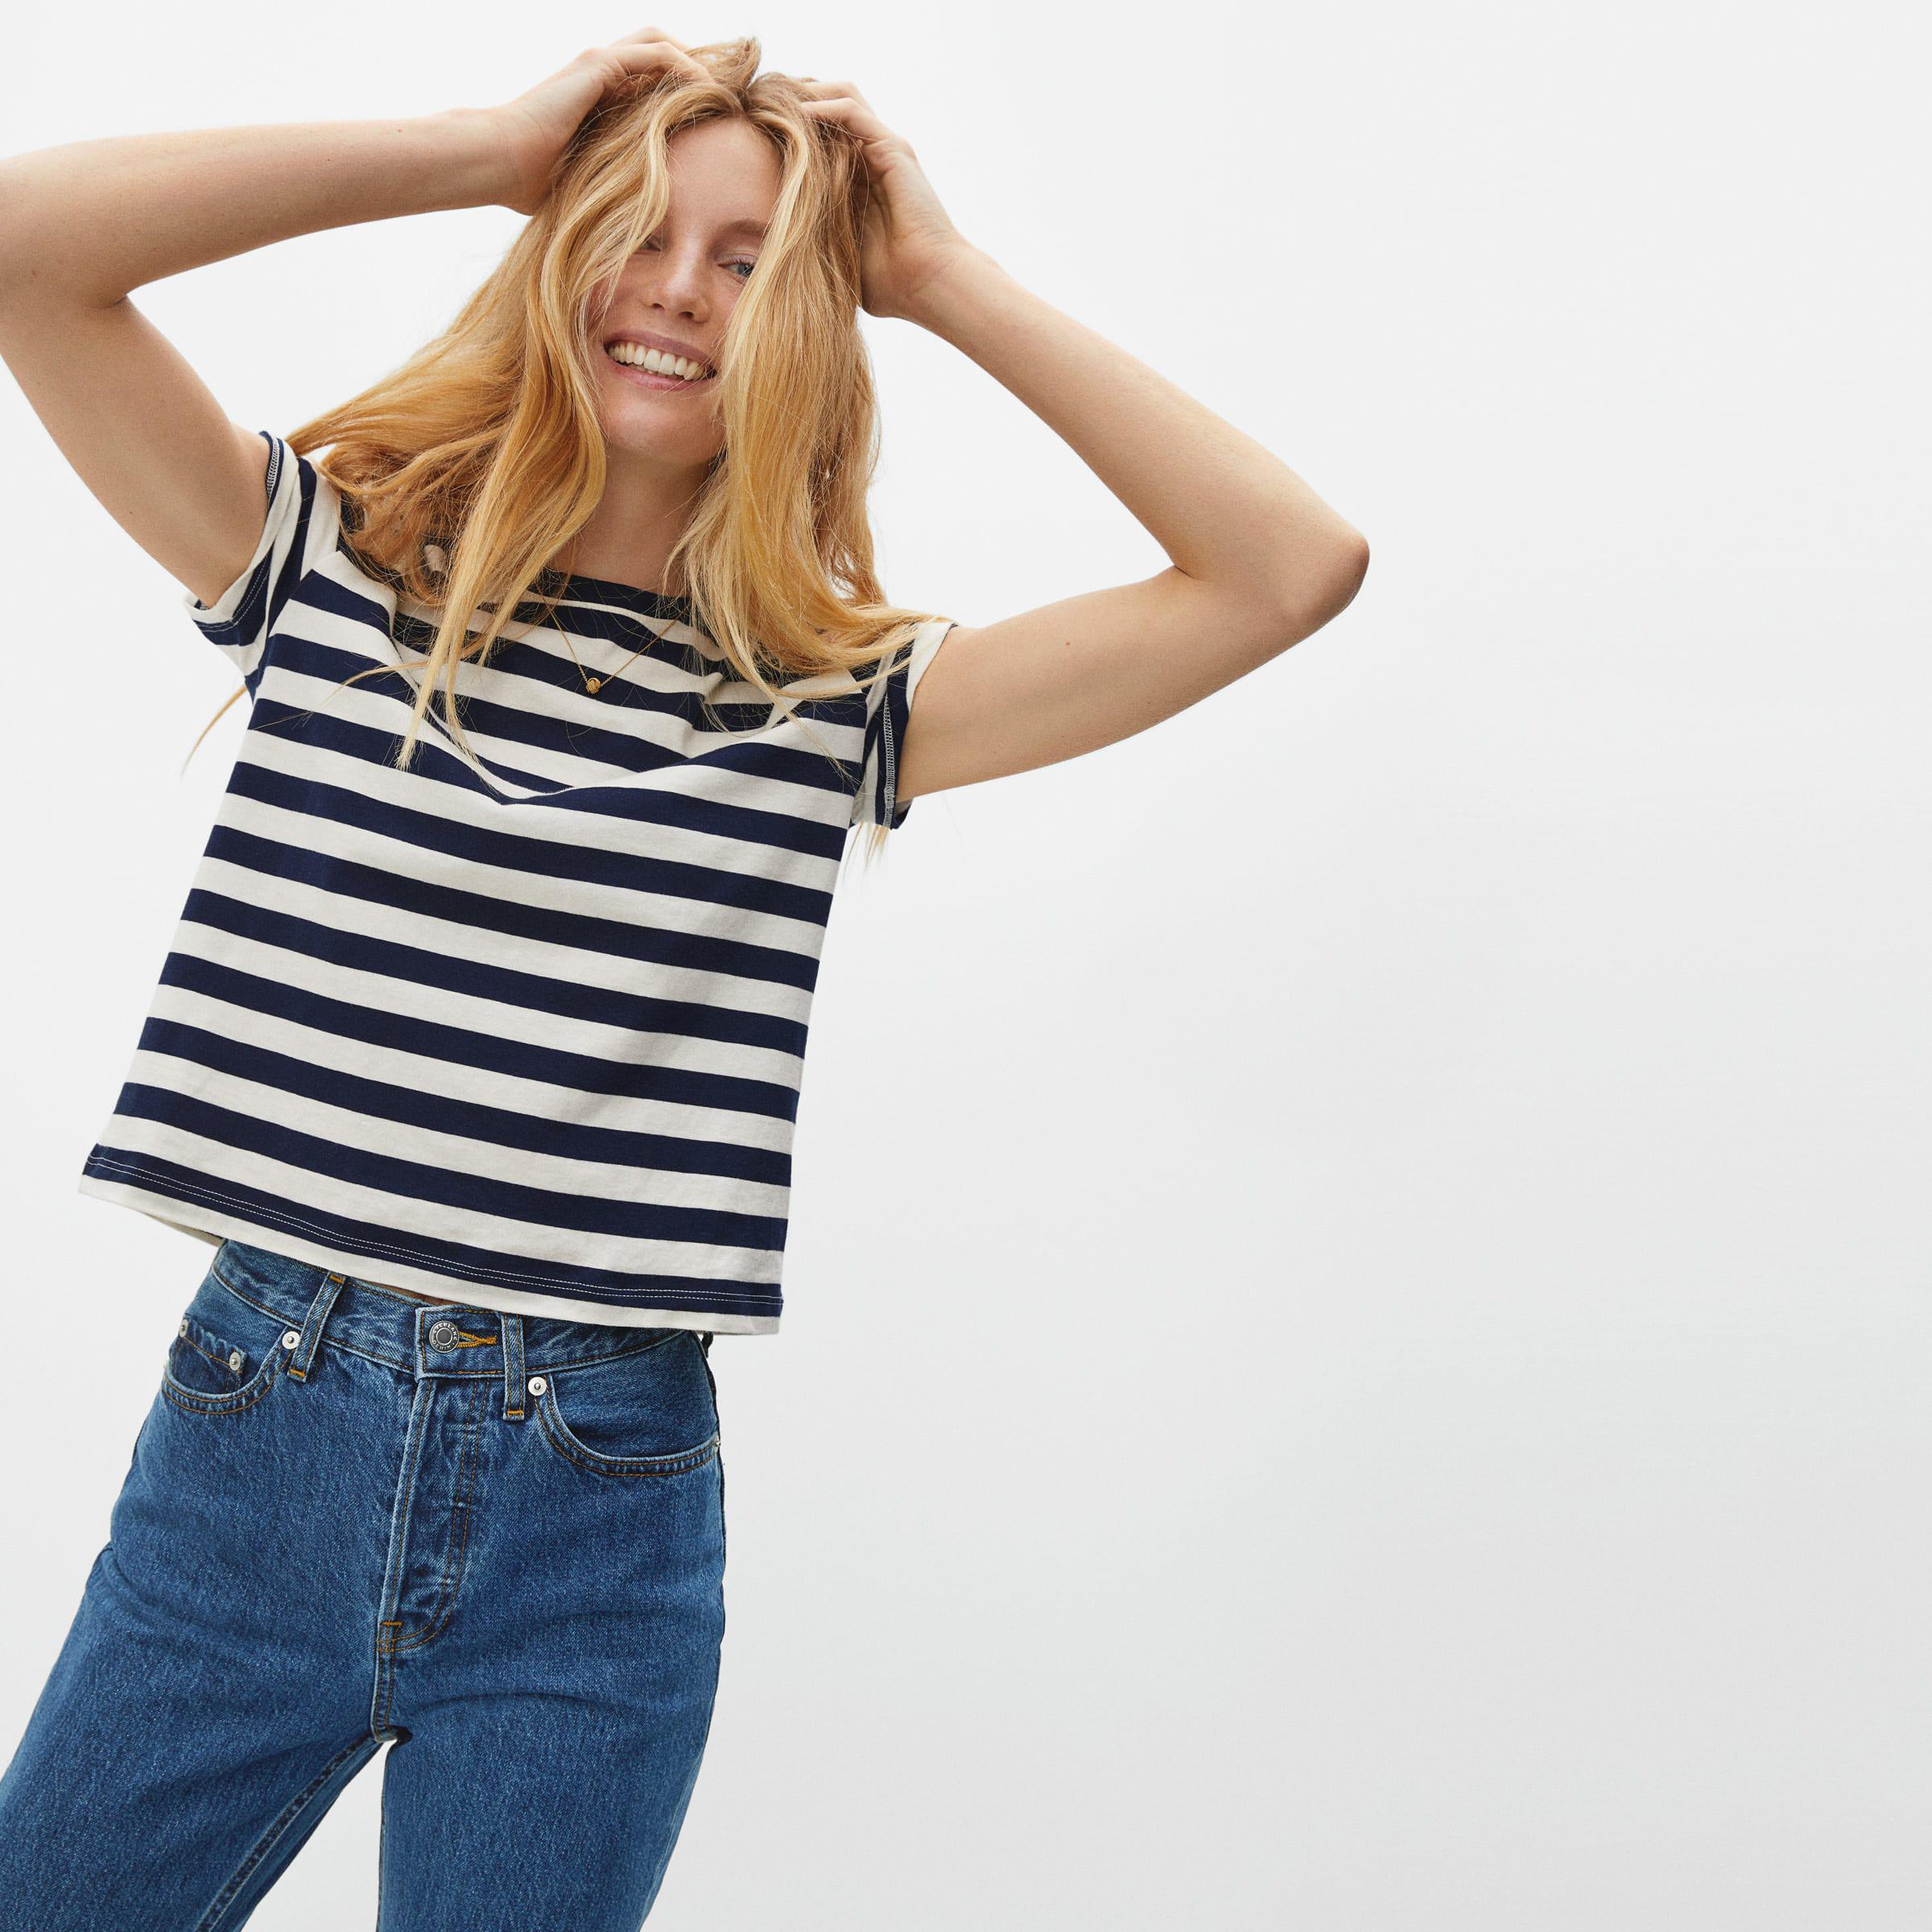 The '90s Cheeky Jean 1